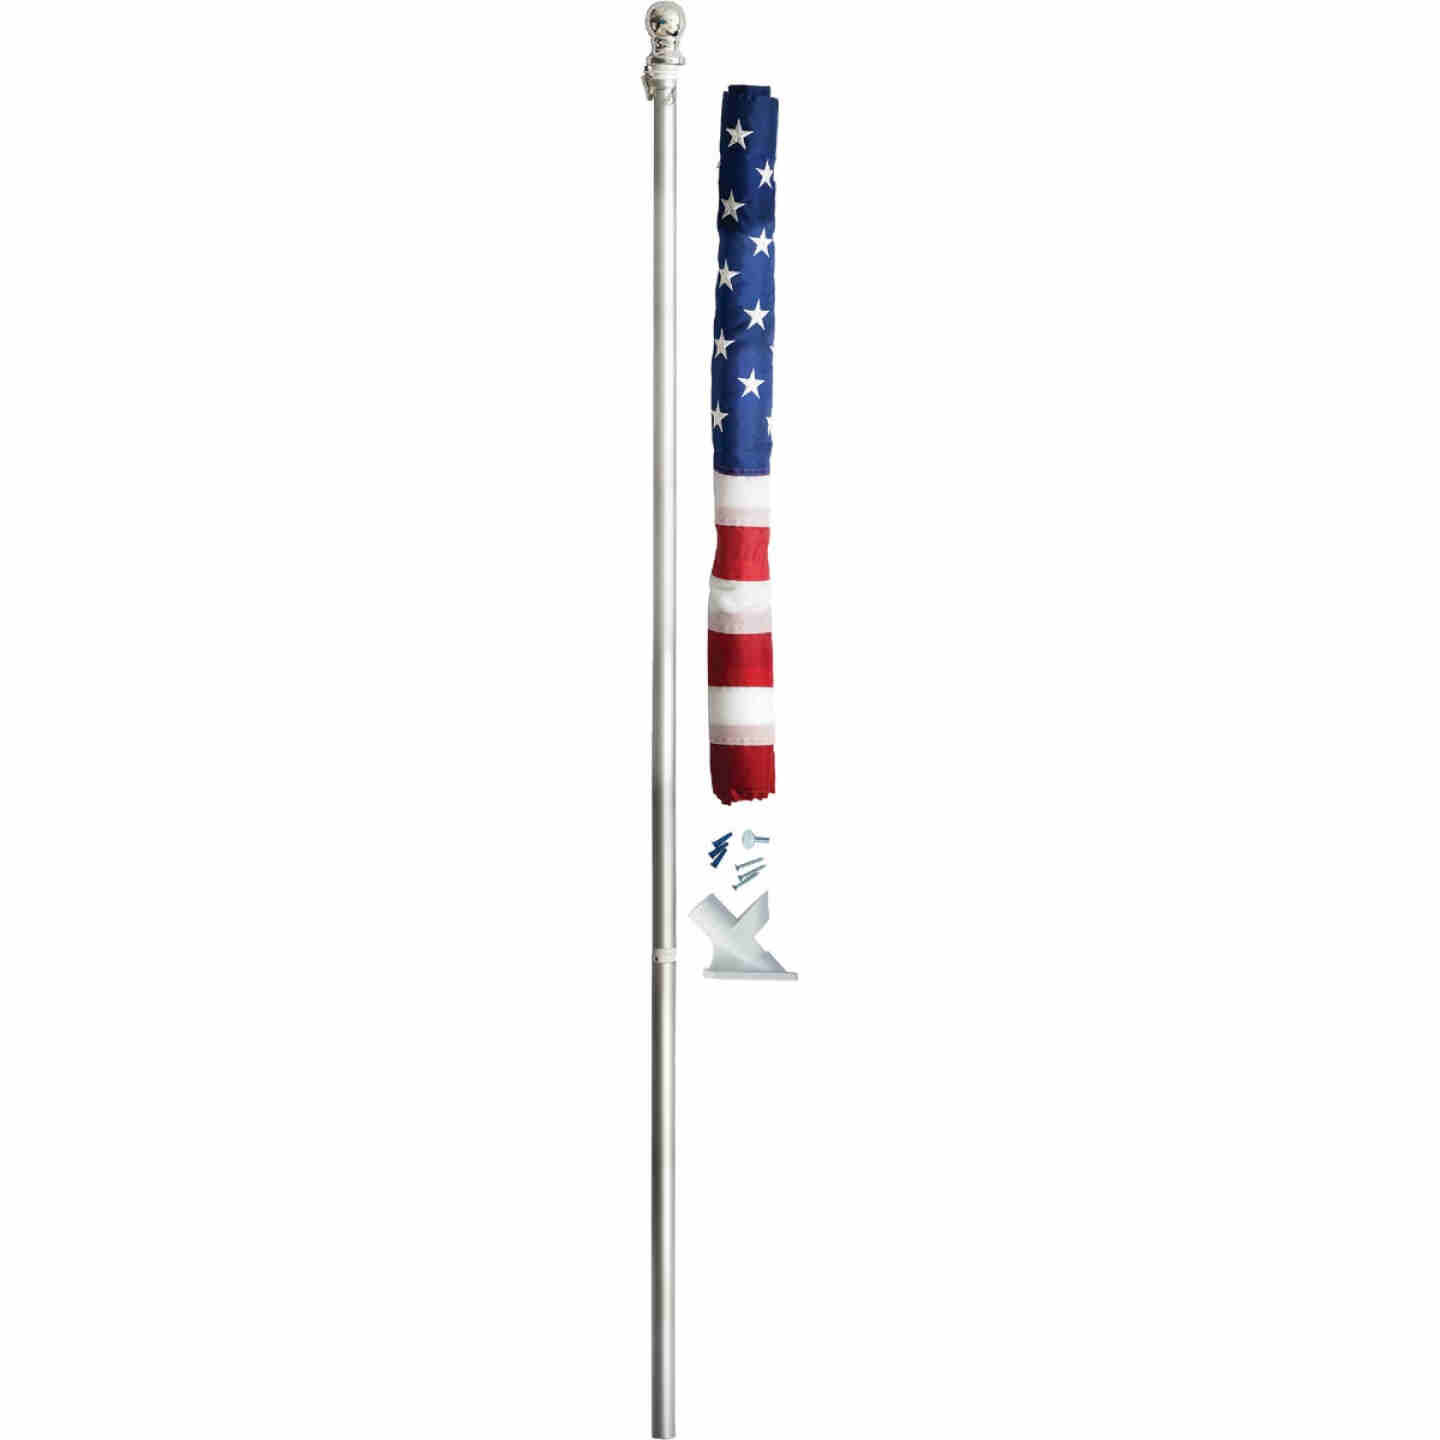 Valley Forge 2.5 Ft. x 4 Ft. Nylon American Flag & 5 Ft. Spinning Pole Kit Image 1